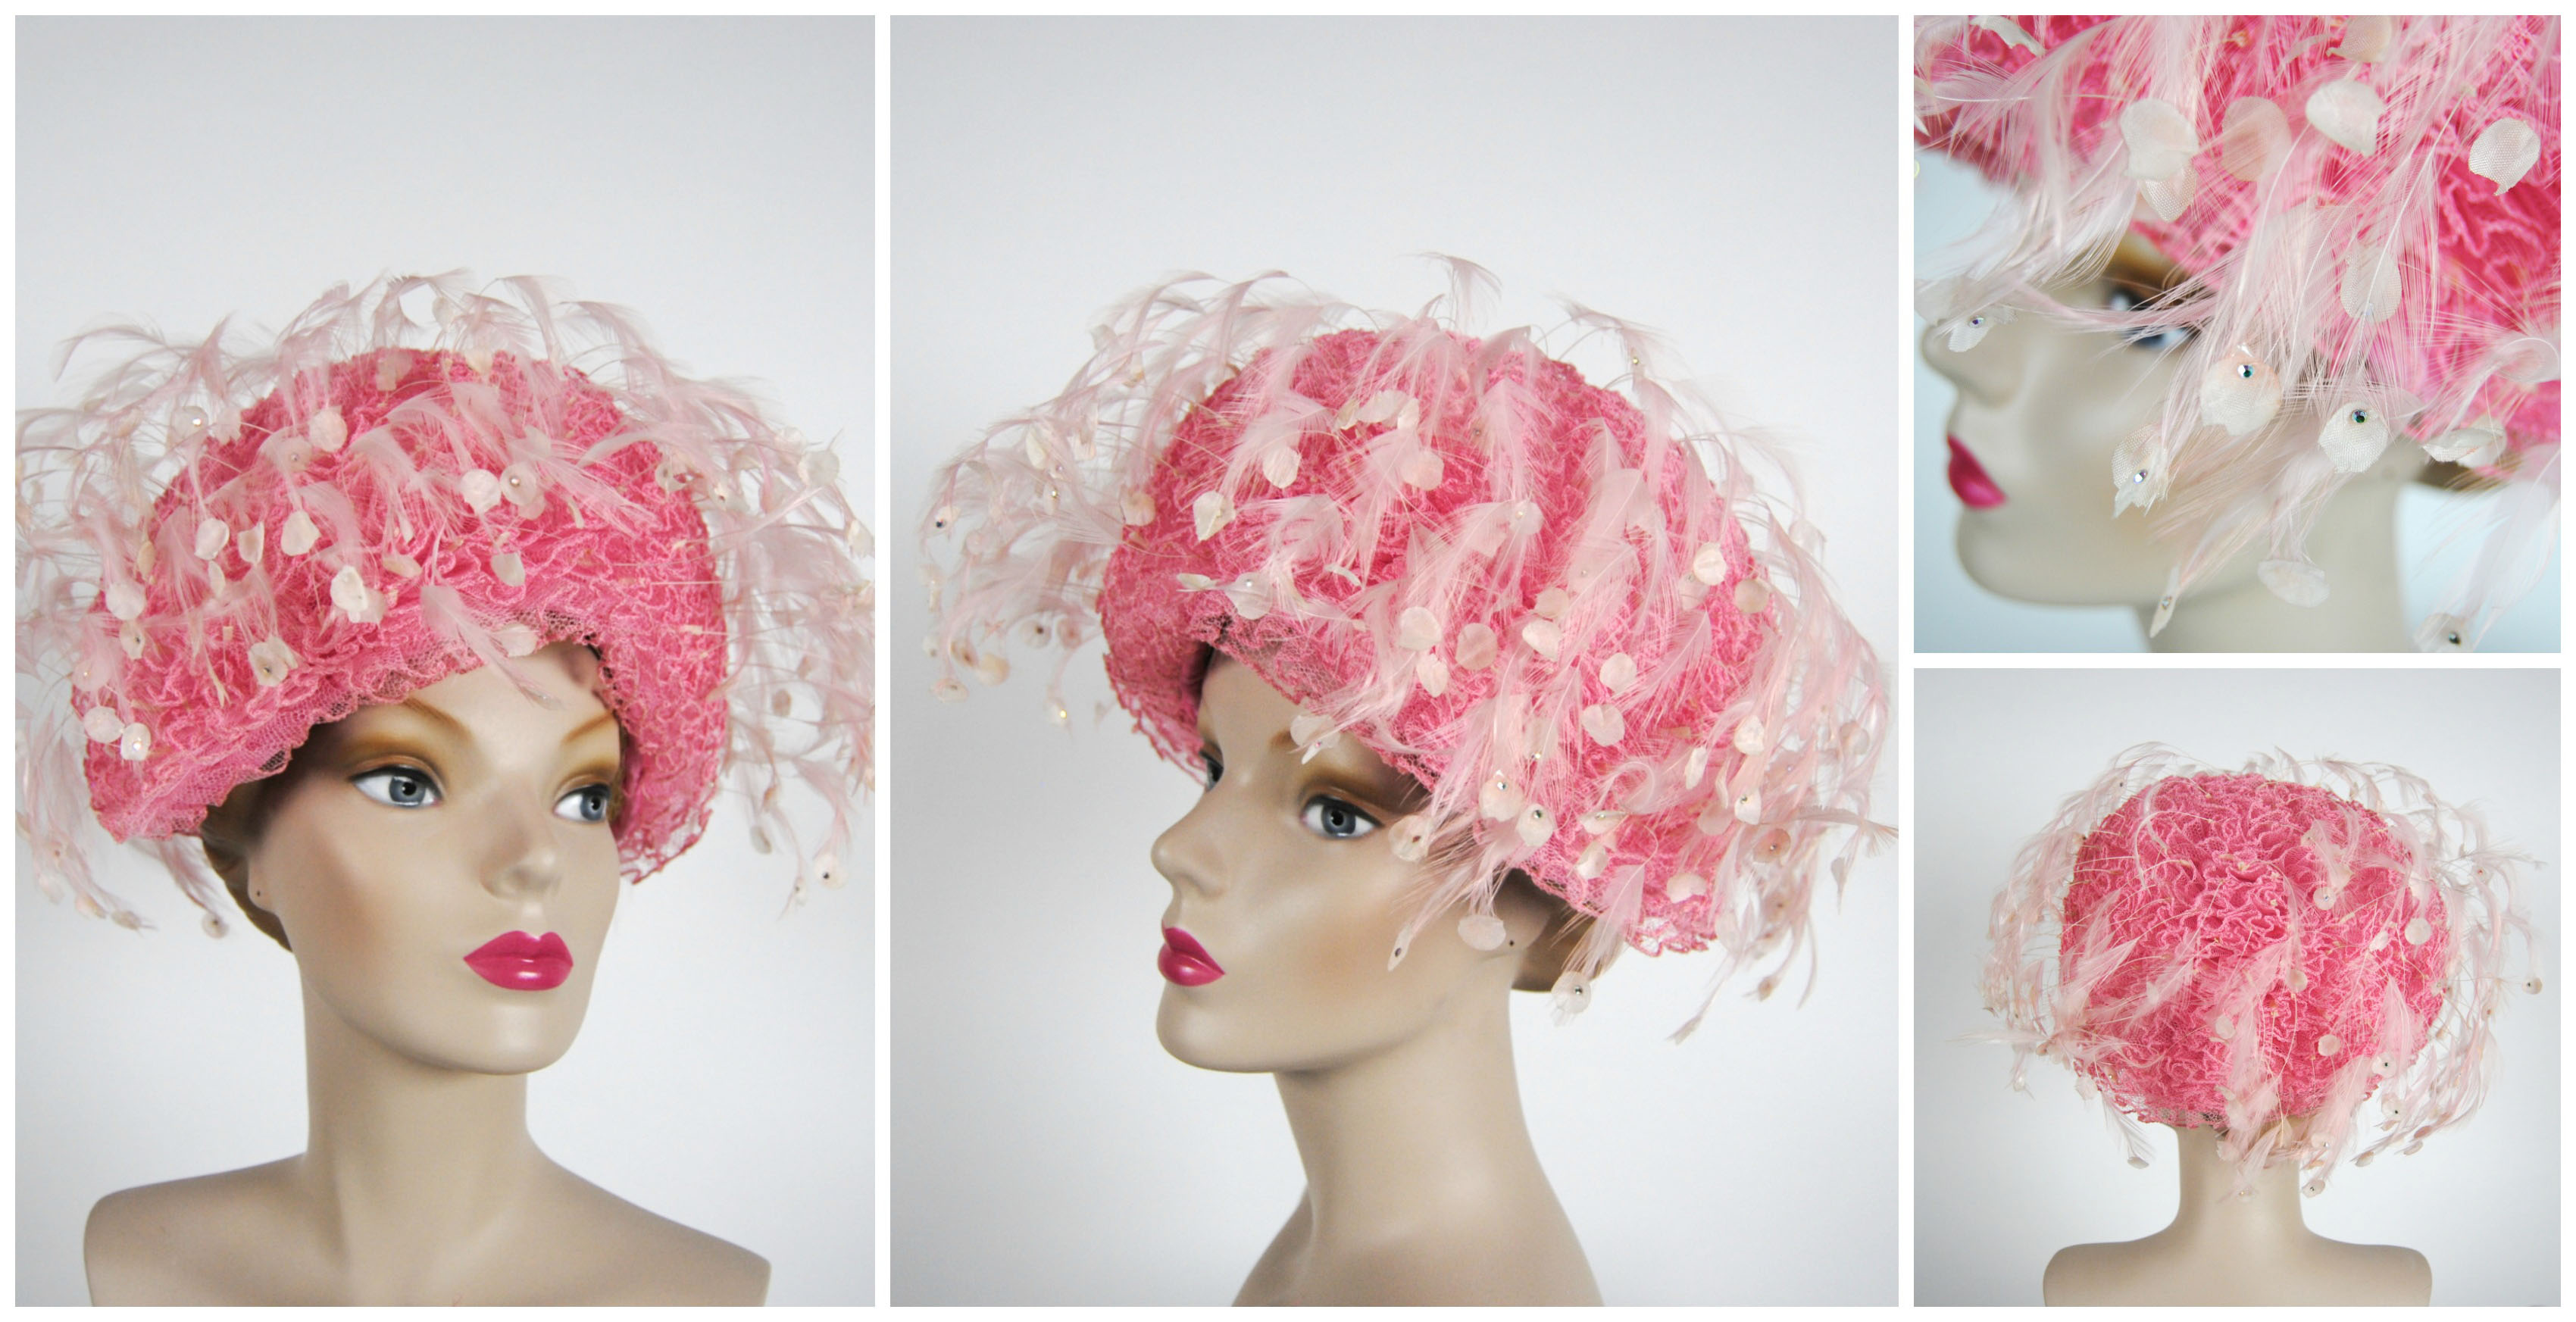 Ian Drummond Collection IDC Toronto Wardrobe Rentals Womens 60s Hat Pink ruffles and feathers